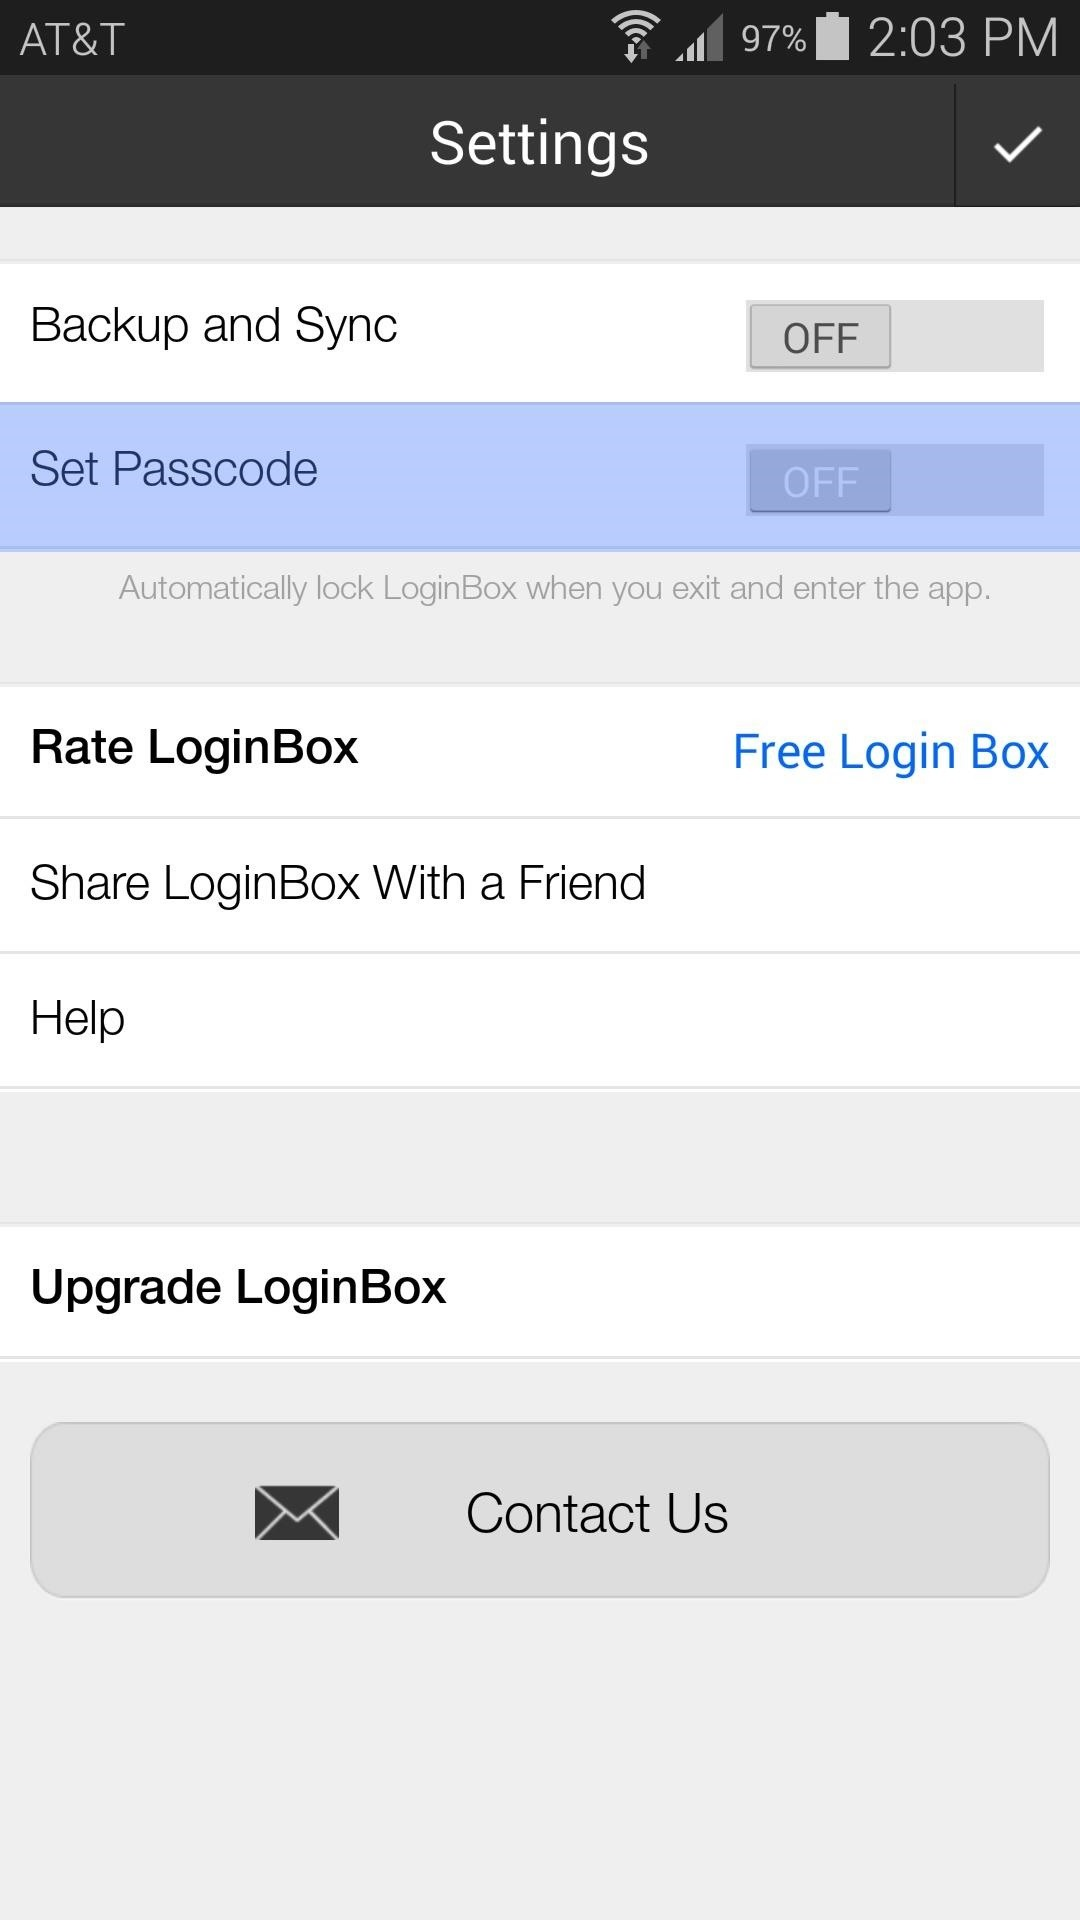 One-Tap, Hassle-Free Logins: Automate the Sign-In Process for Your